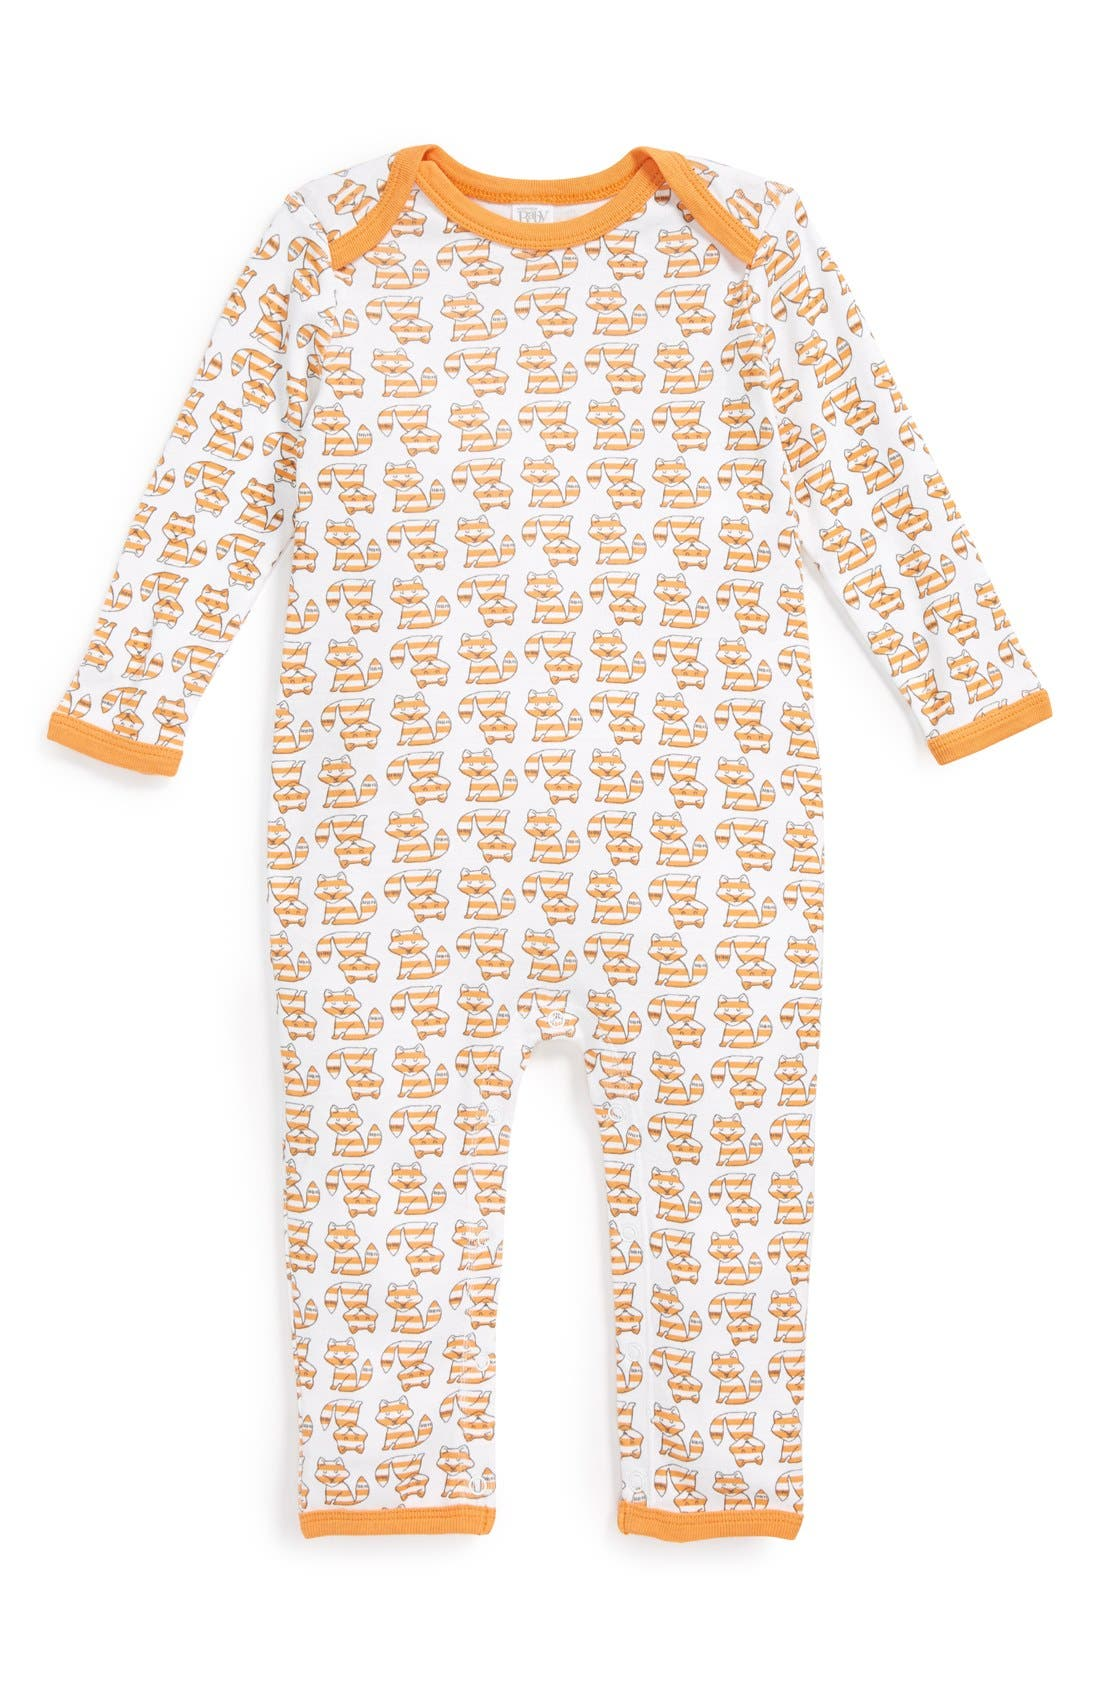 Main Image - Nordstrom Baby Print Romper (Baby Boys)